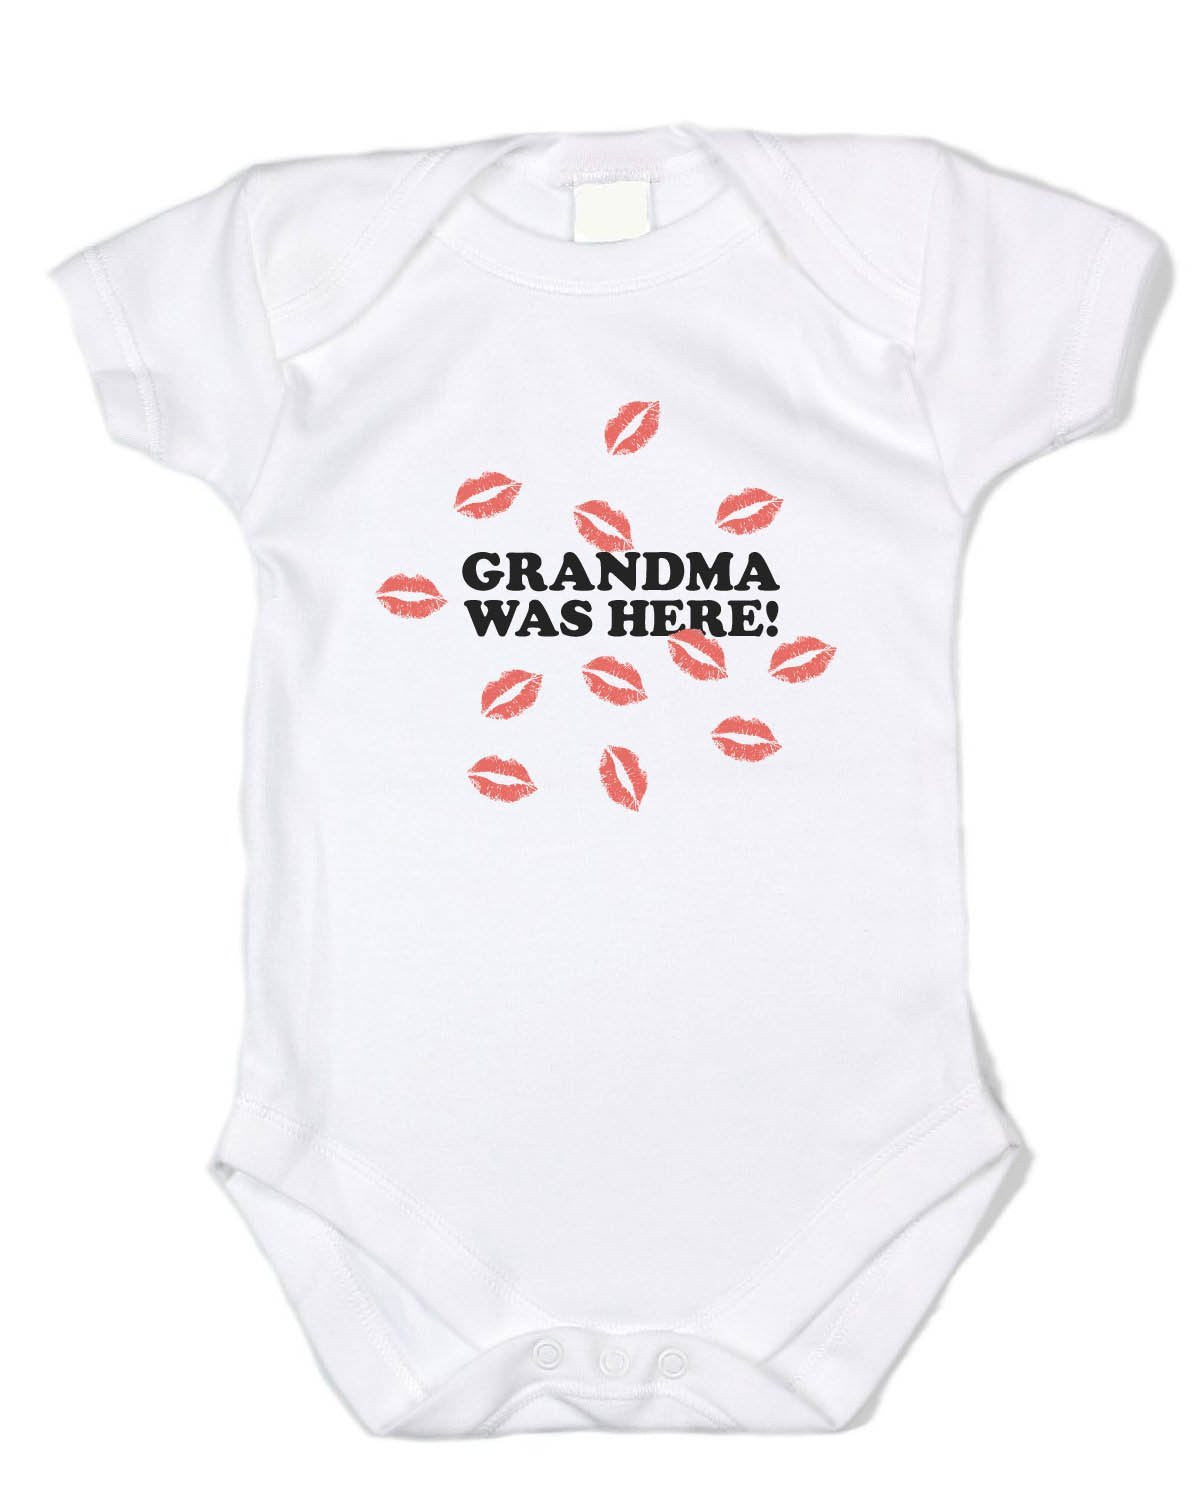 "Grandma Baby Clothing ""Grandma Was Here!"" White Onesie"